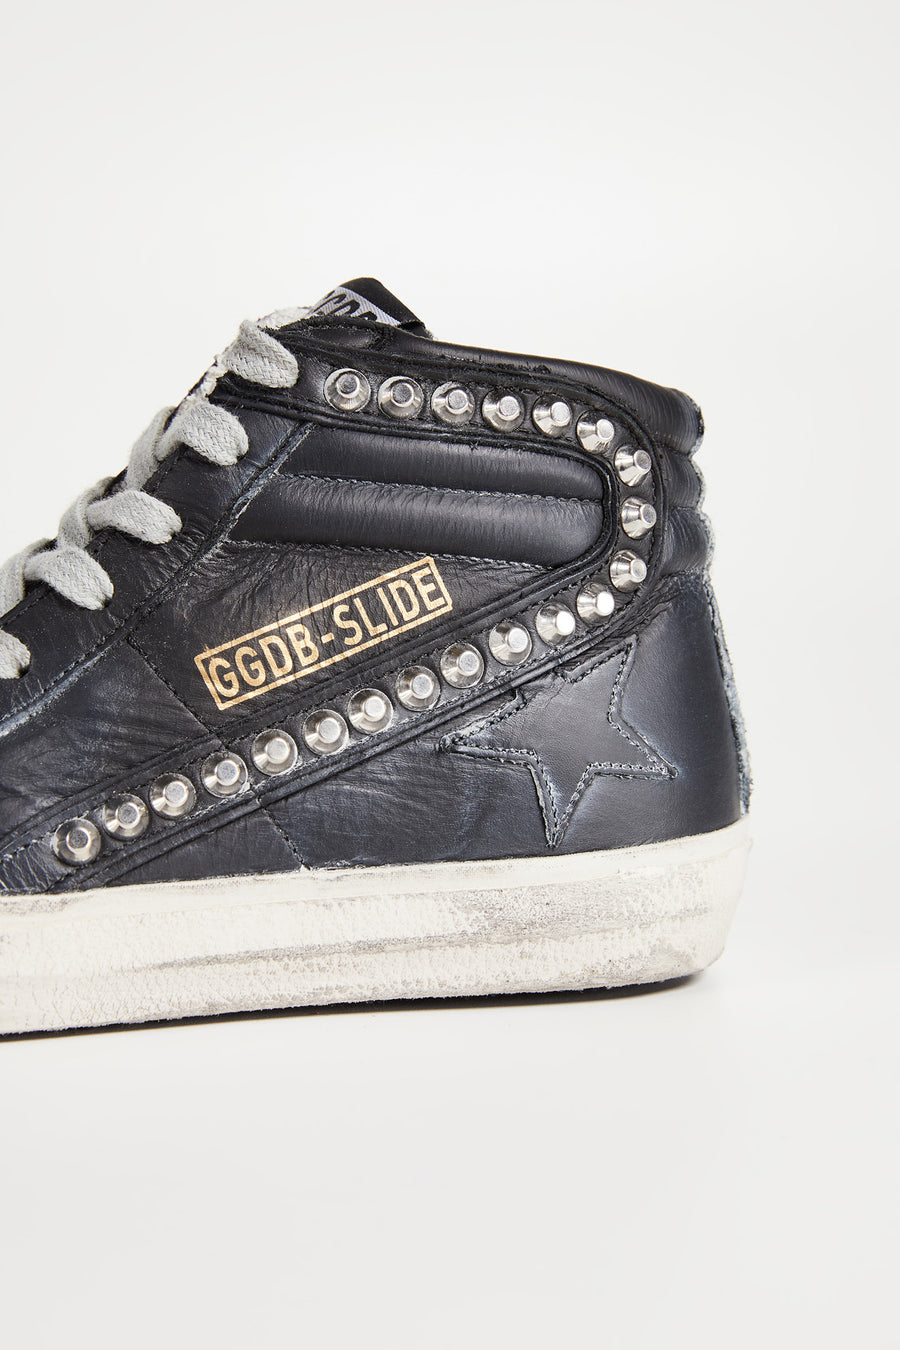 Slide - Black Leather Studs